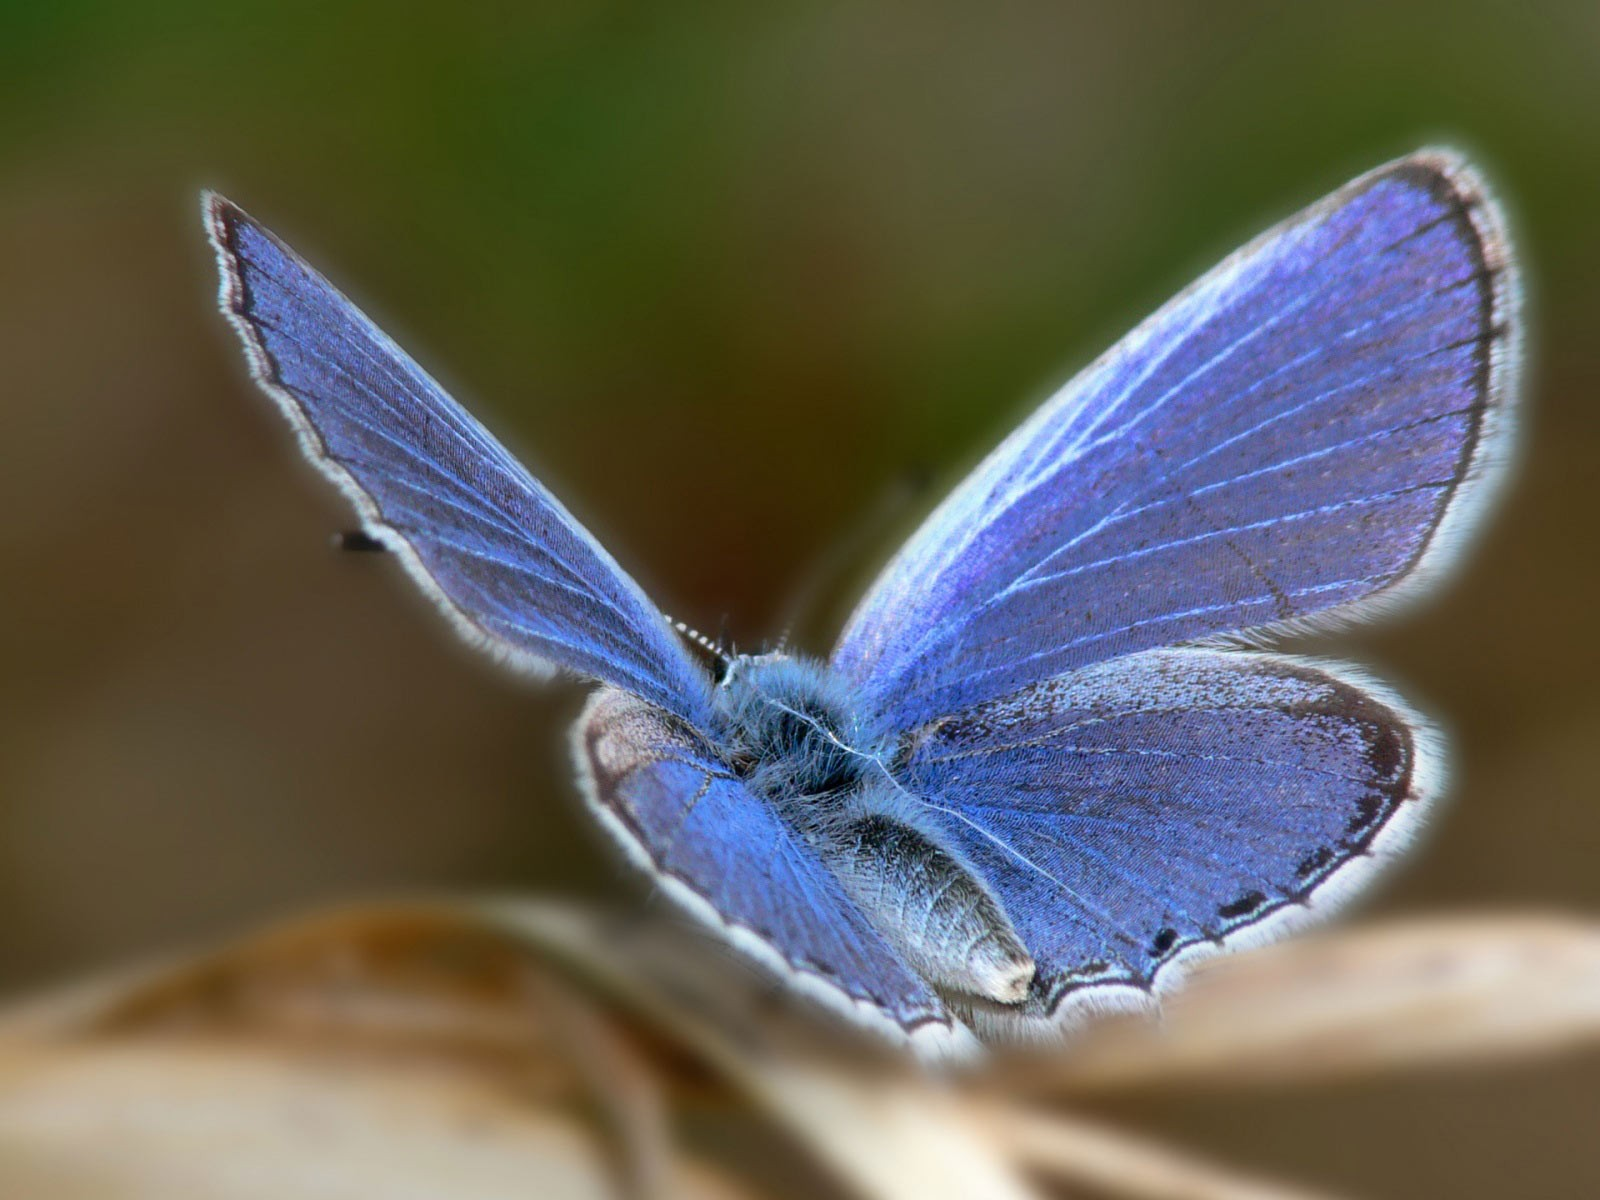 Cute Animal Posts, Beautiful Blue Butterfly, Shall Stay Around Long--1600X1200 free wallpaper download